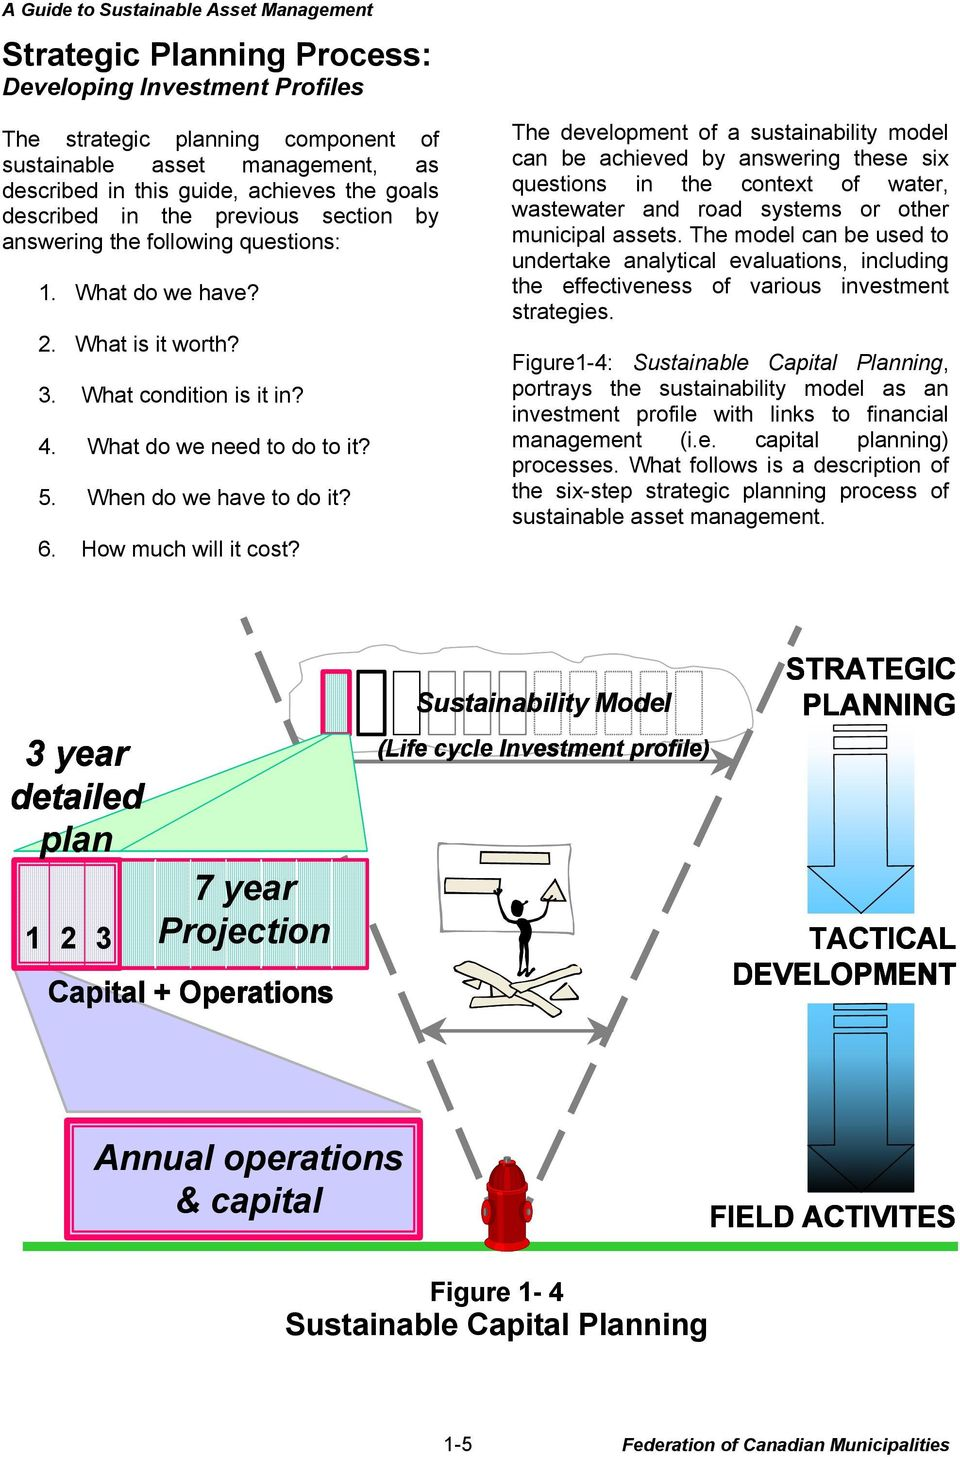 How much will it cost? The development of a sustainability model can be achieved by answering these six questions in the context of water, wastewater and road systems or other municipal assets.